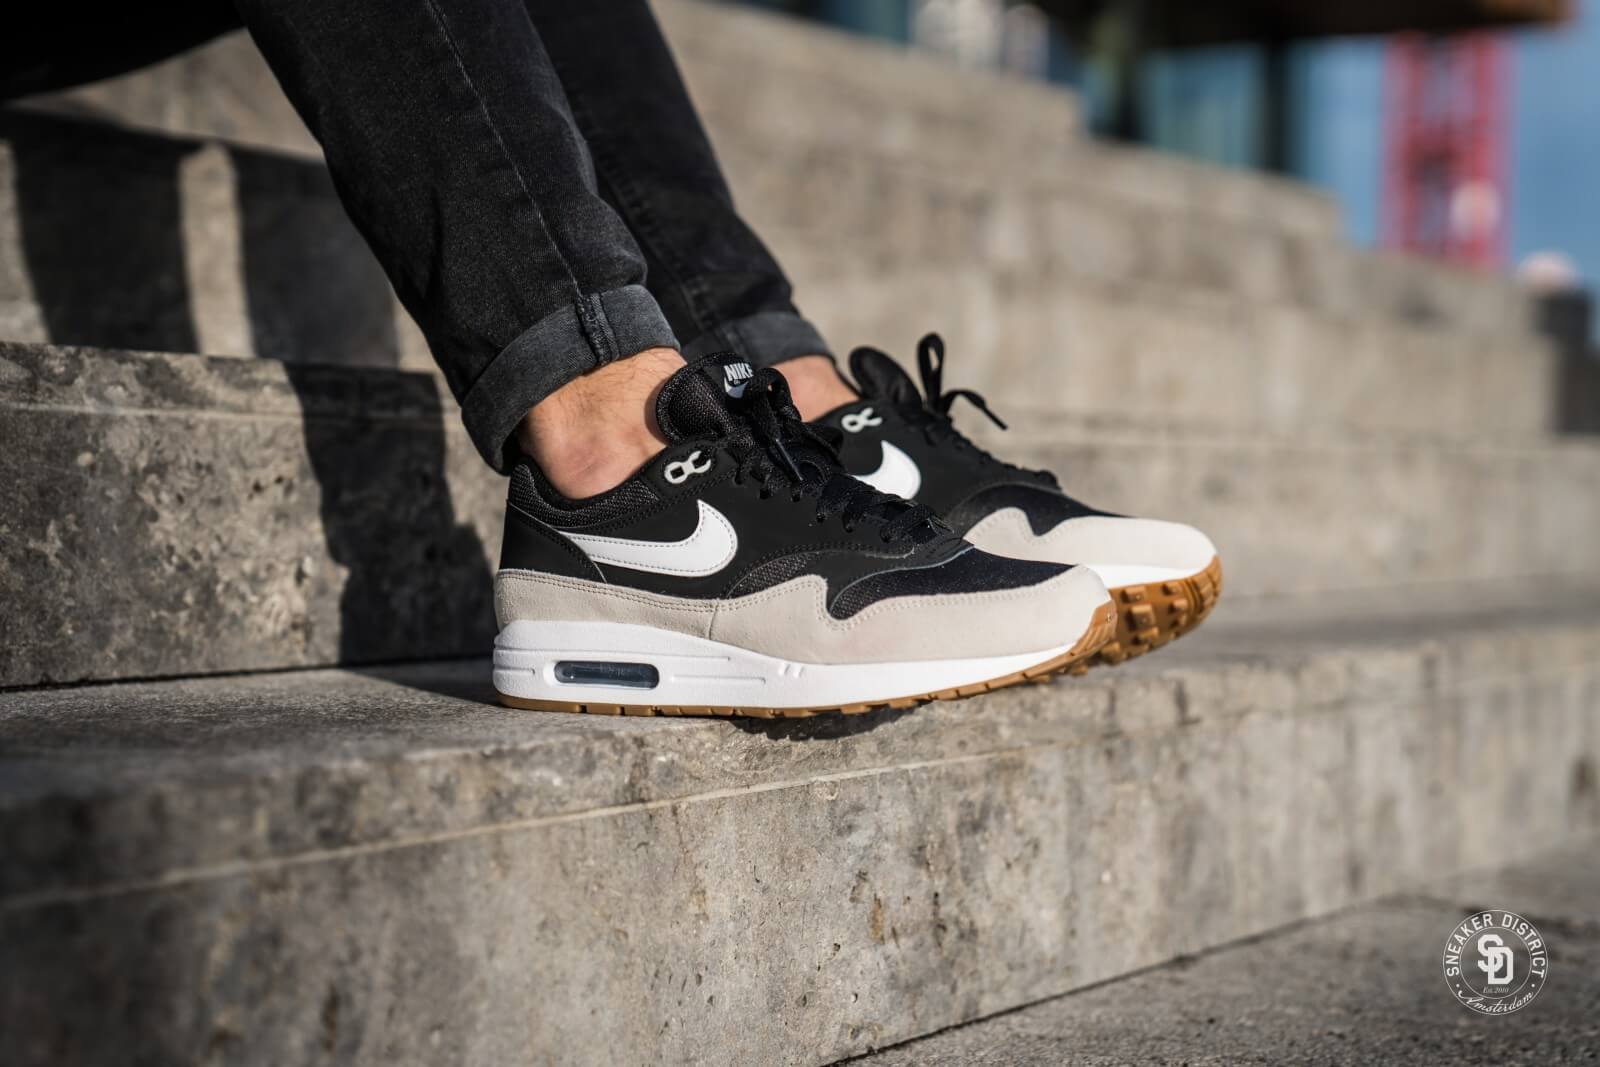 Nike Air Max 1 BlackWhite Light Bone AH8145 009